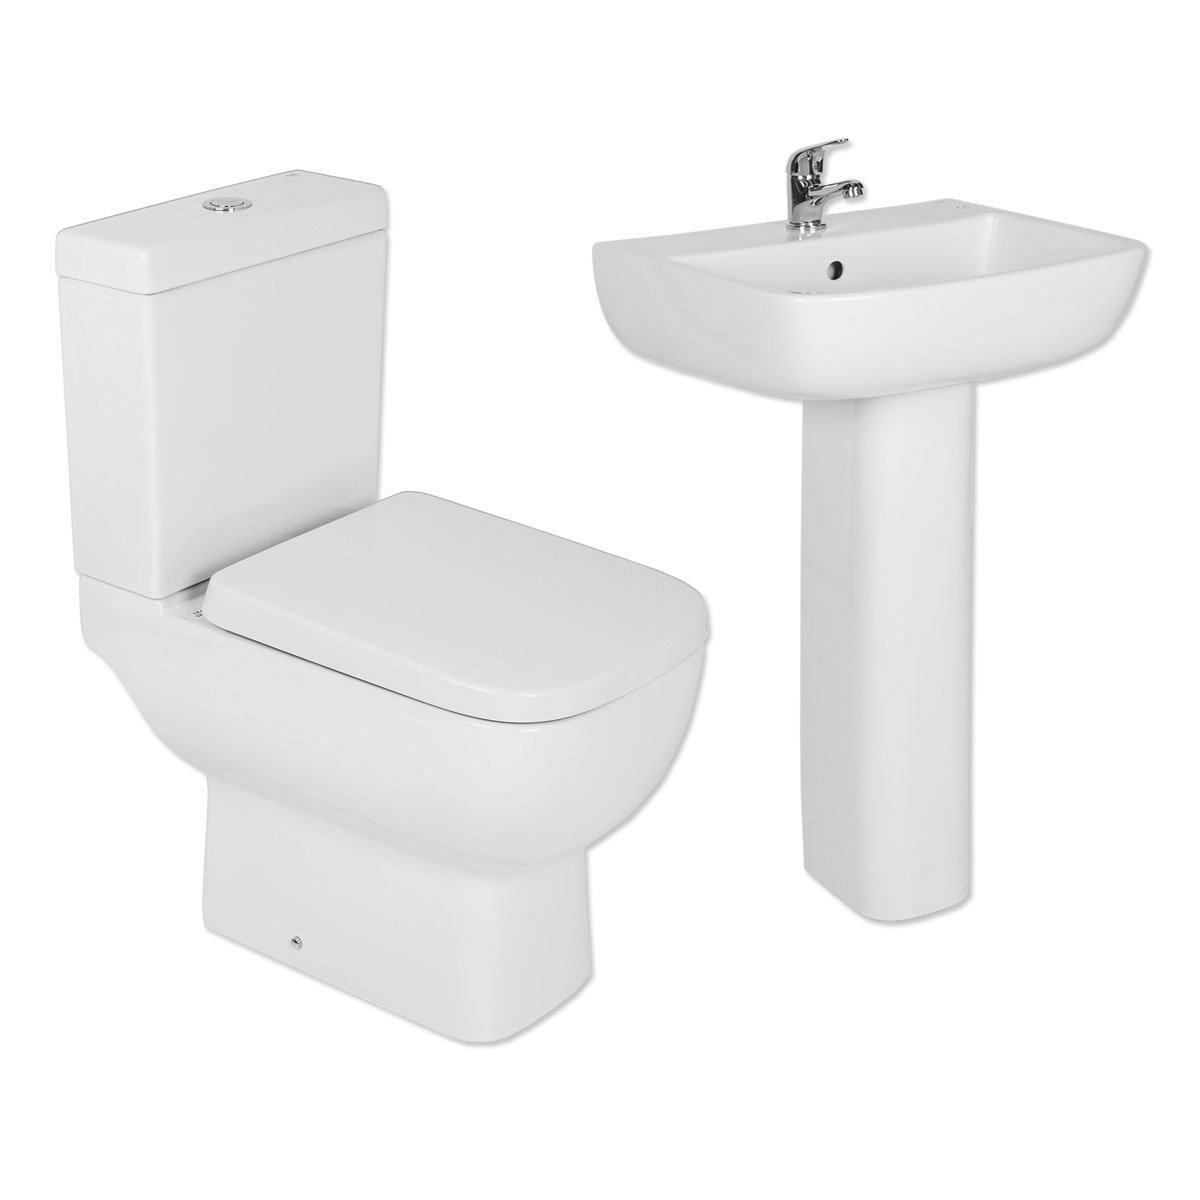 RAK Series 600 Short Projection Close Coupled Toilet with Dual Flush Cistern & Full Pedestal Basin Cloakroom Suite